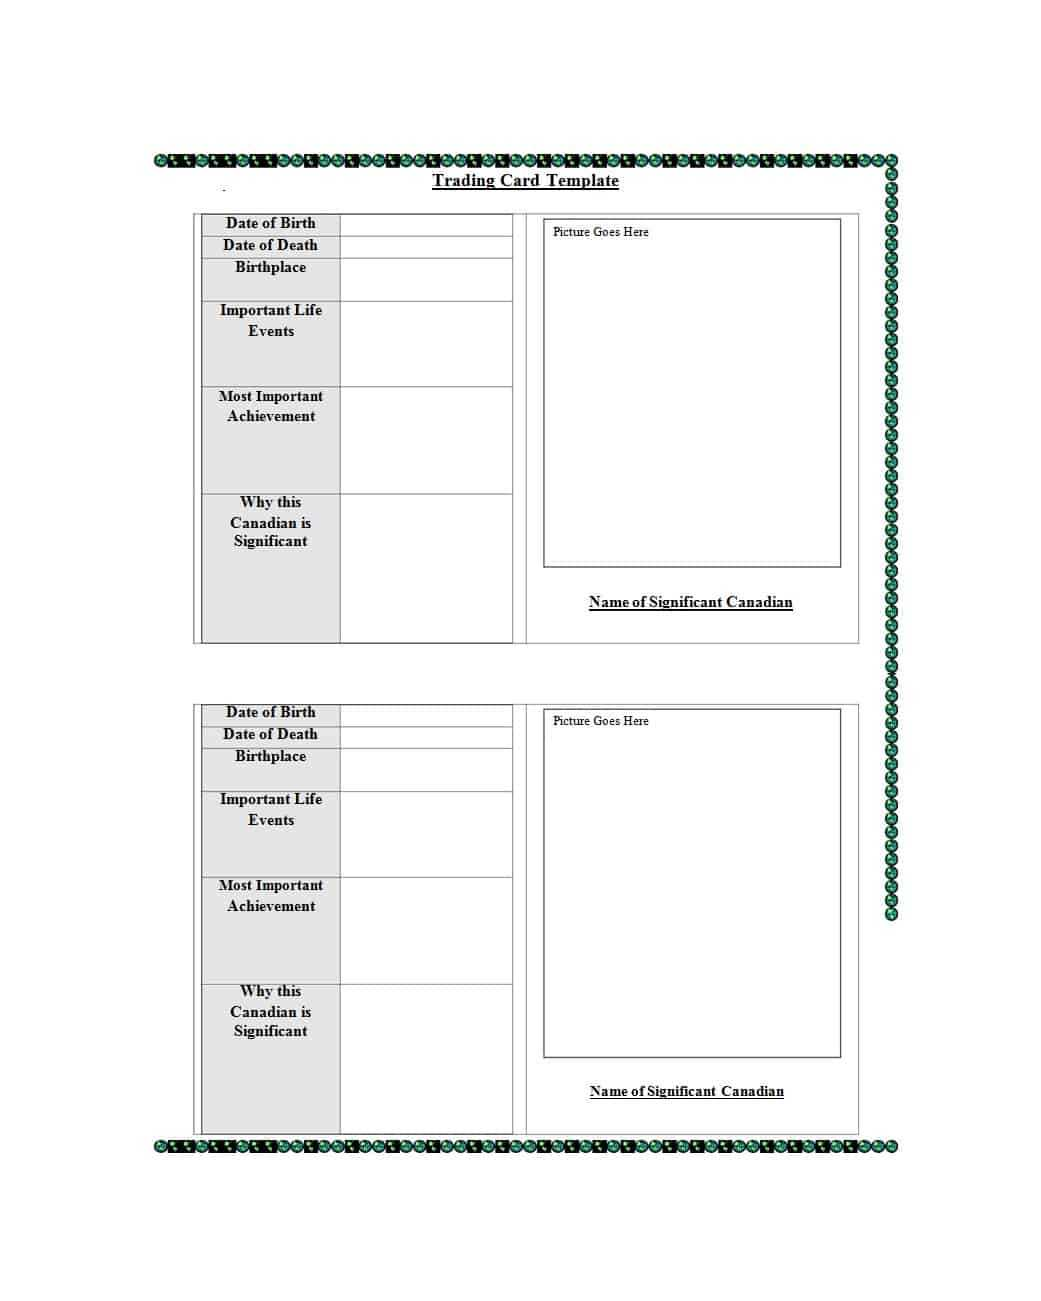 33 Free Trading Card Templates (Baseball, Football, Etc Pertaining To Free Trading Card Template Download